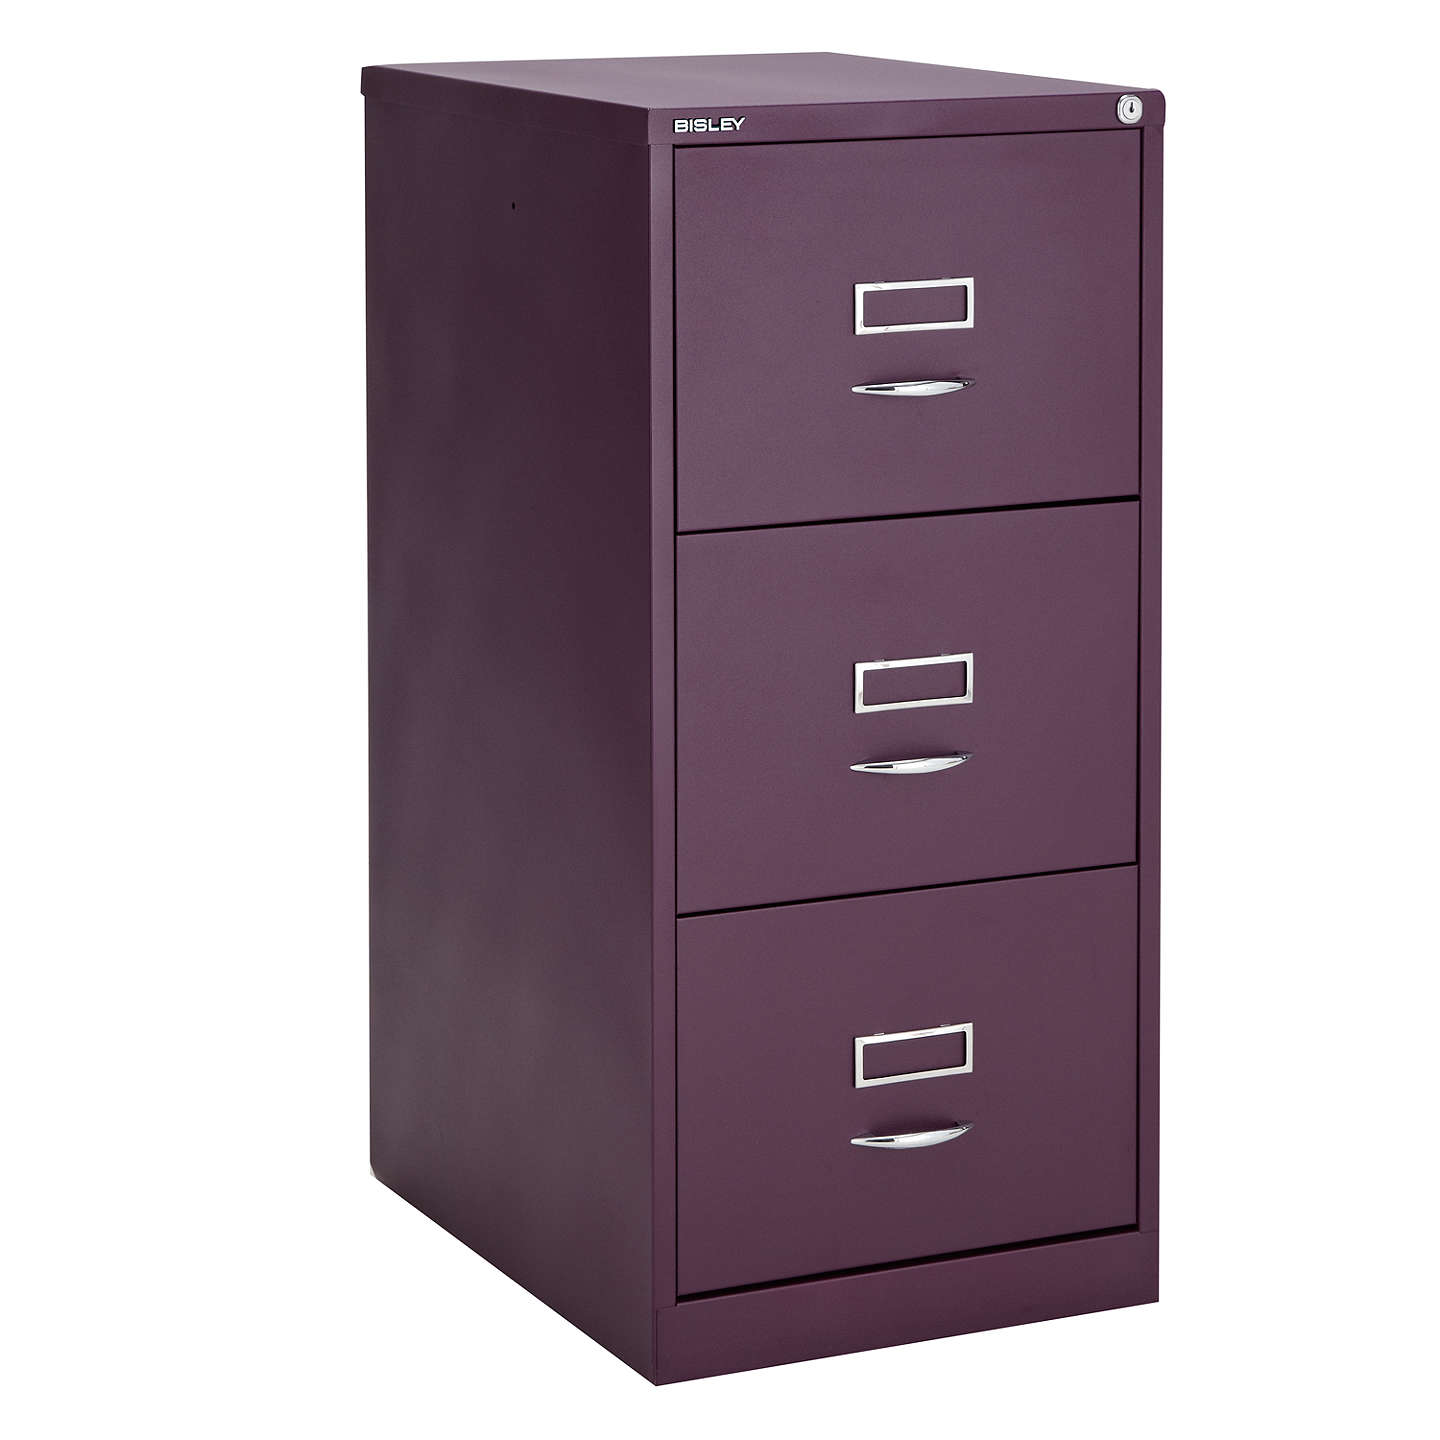 used master bisley posovetuem key keys metal flush cream drawer cabinet filing front info